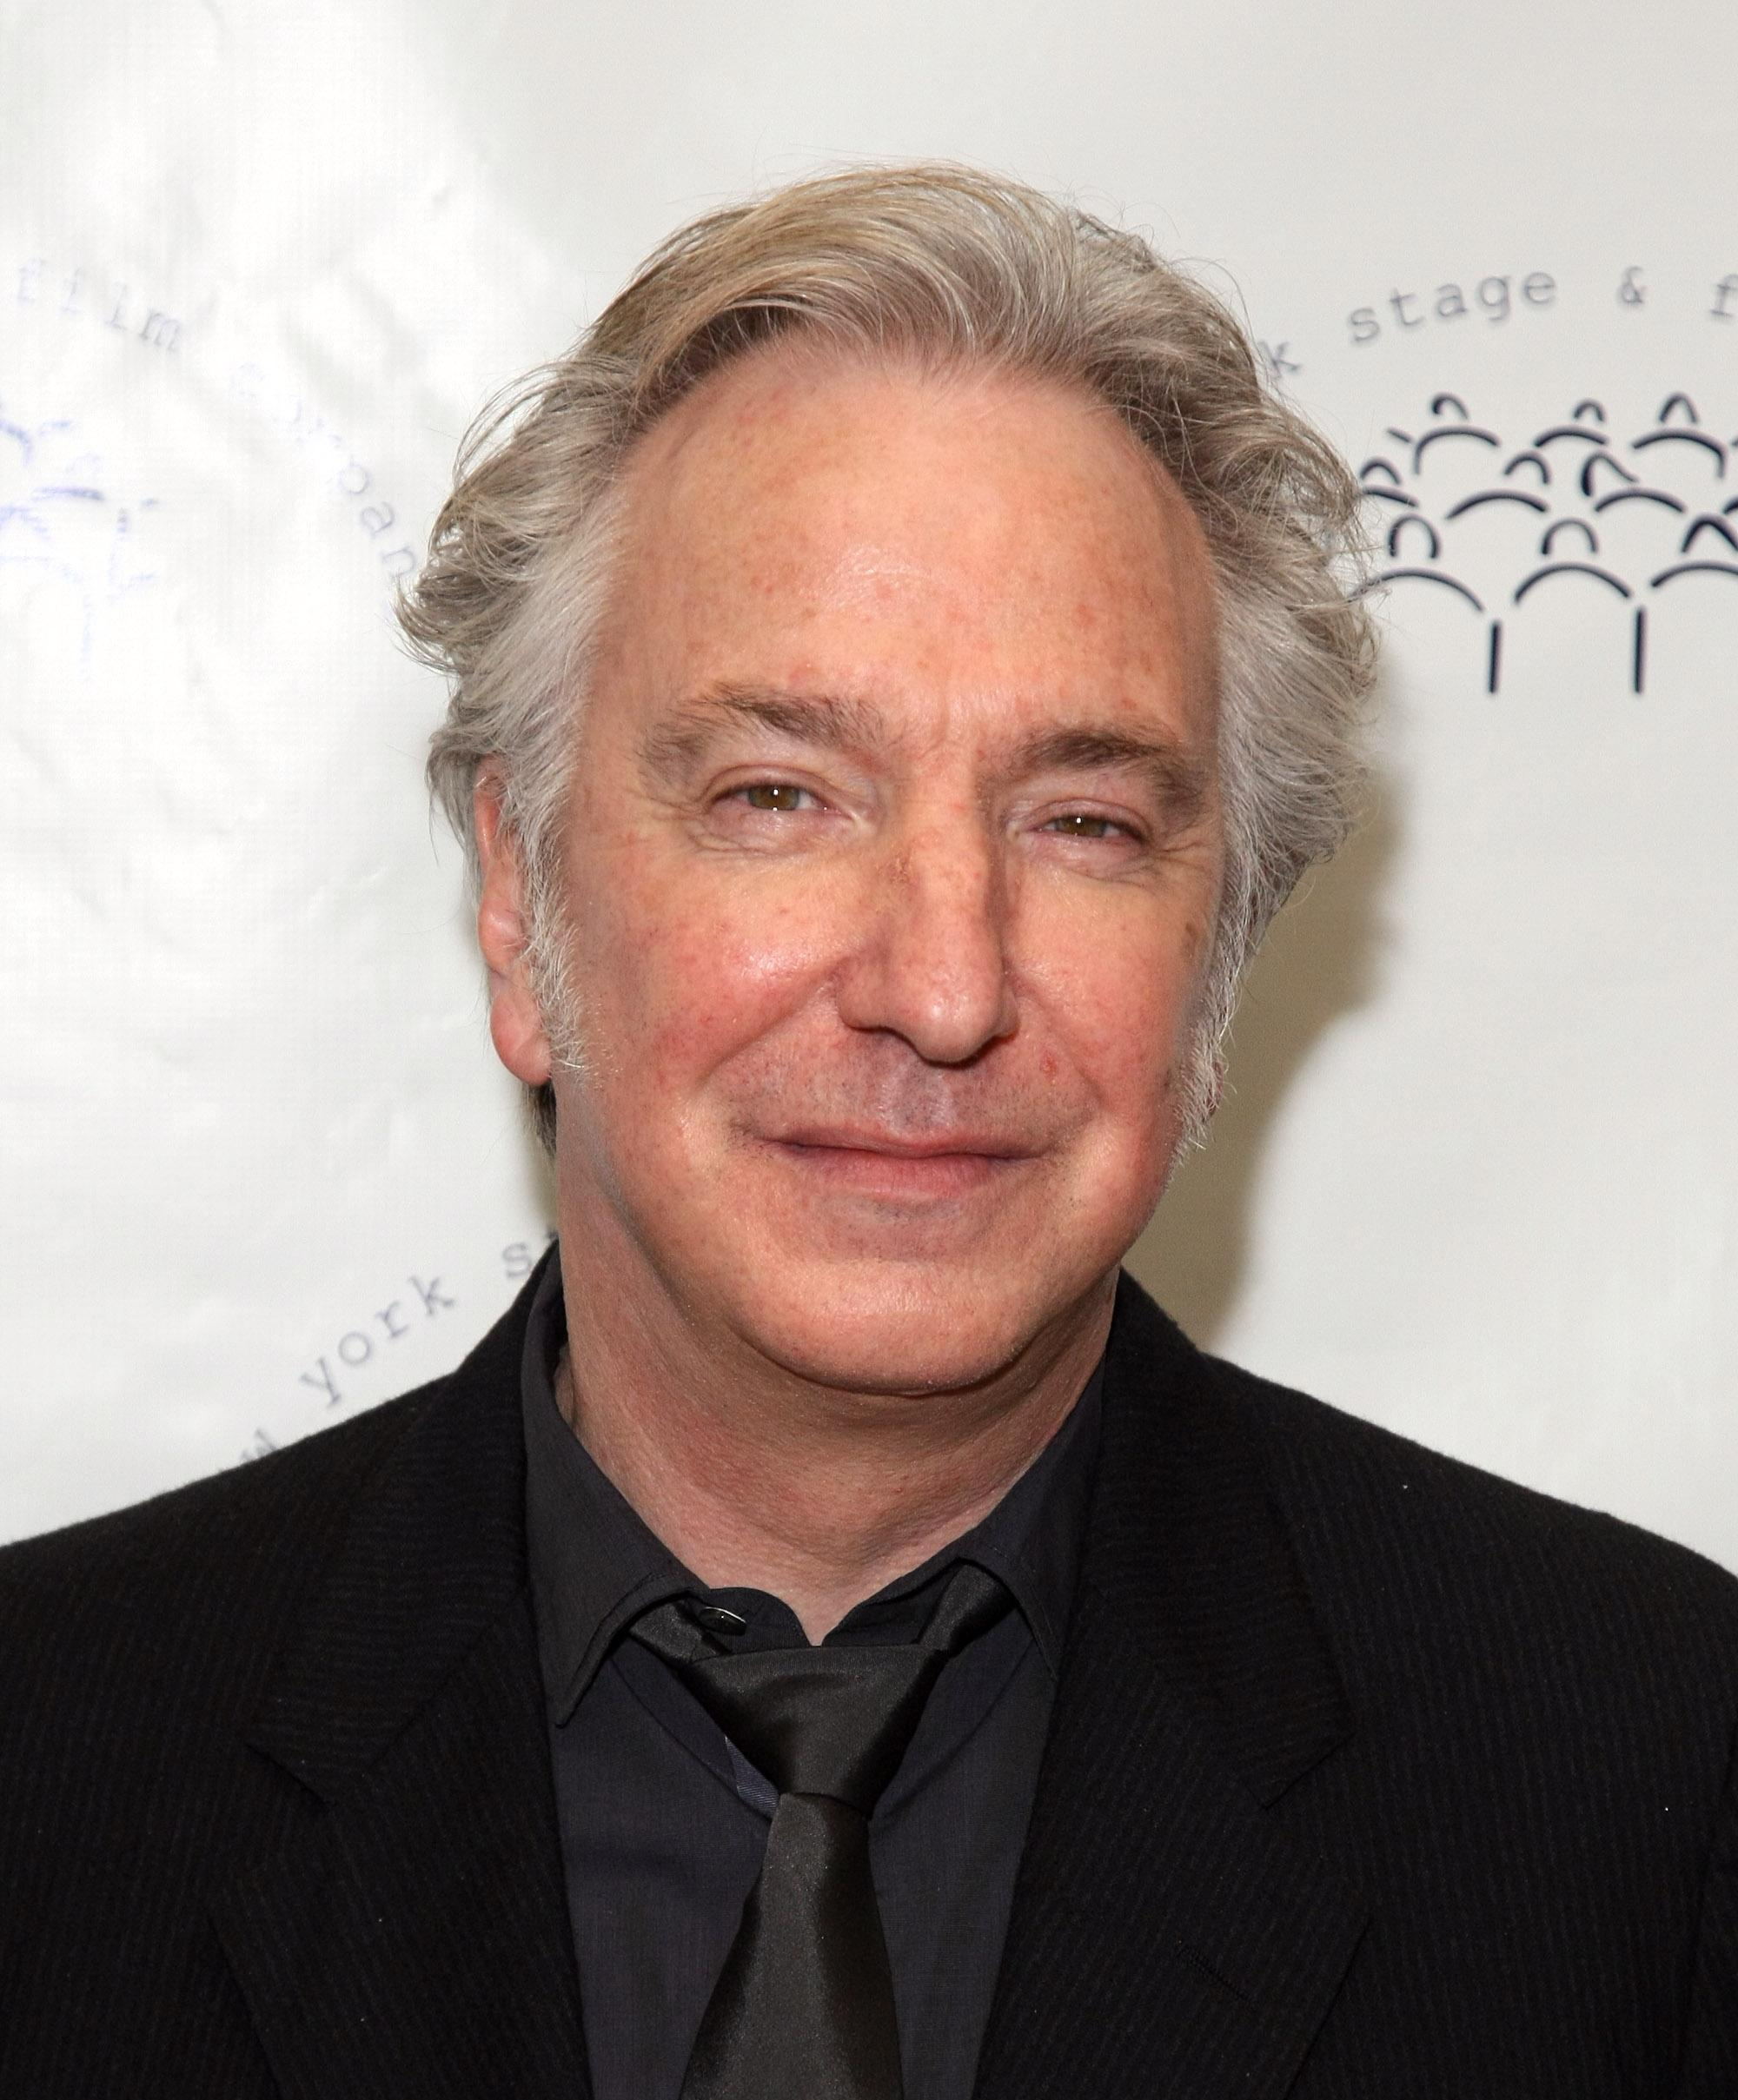 Alan Rickman, Famous for Complex Characters, Dies - The Arrow